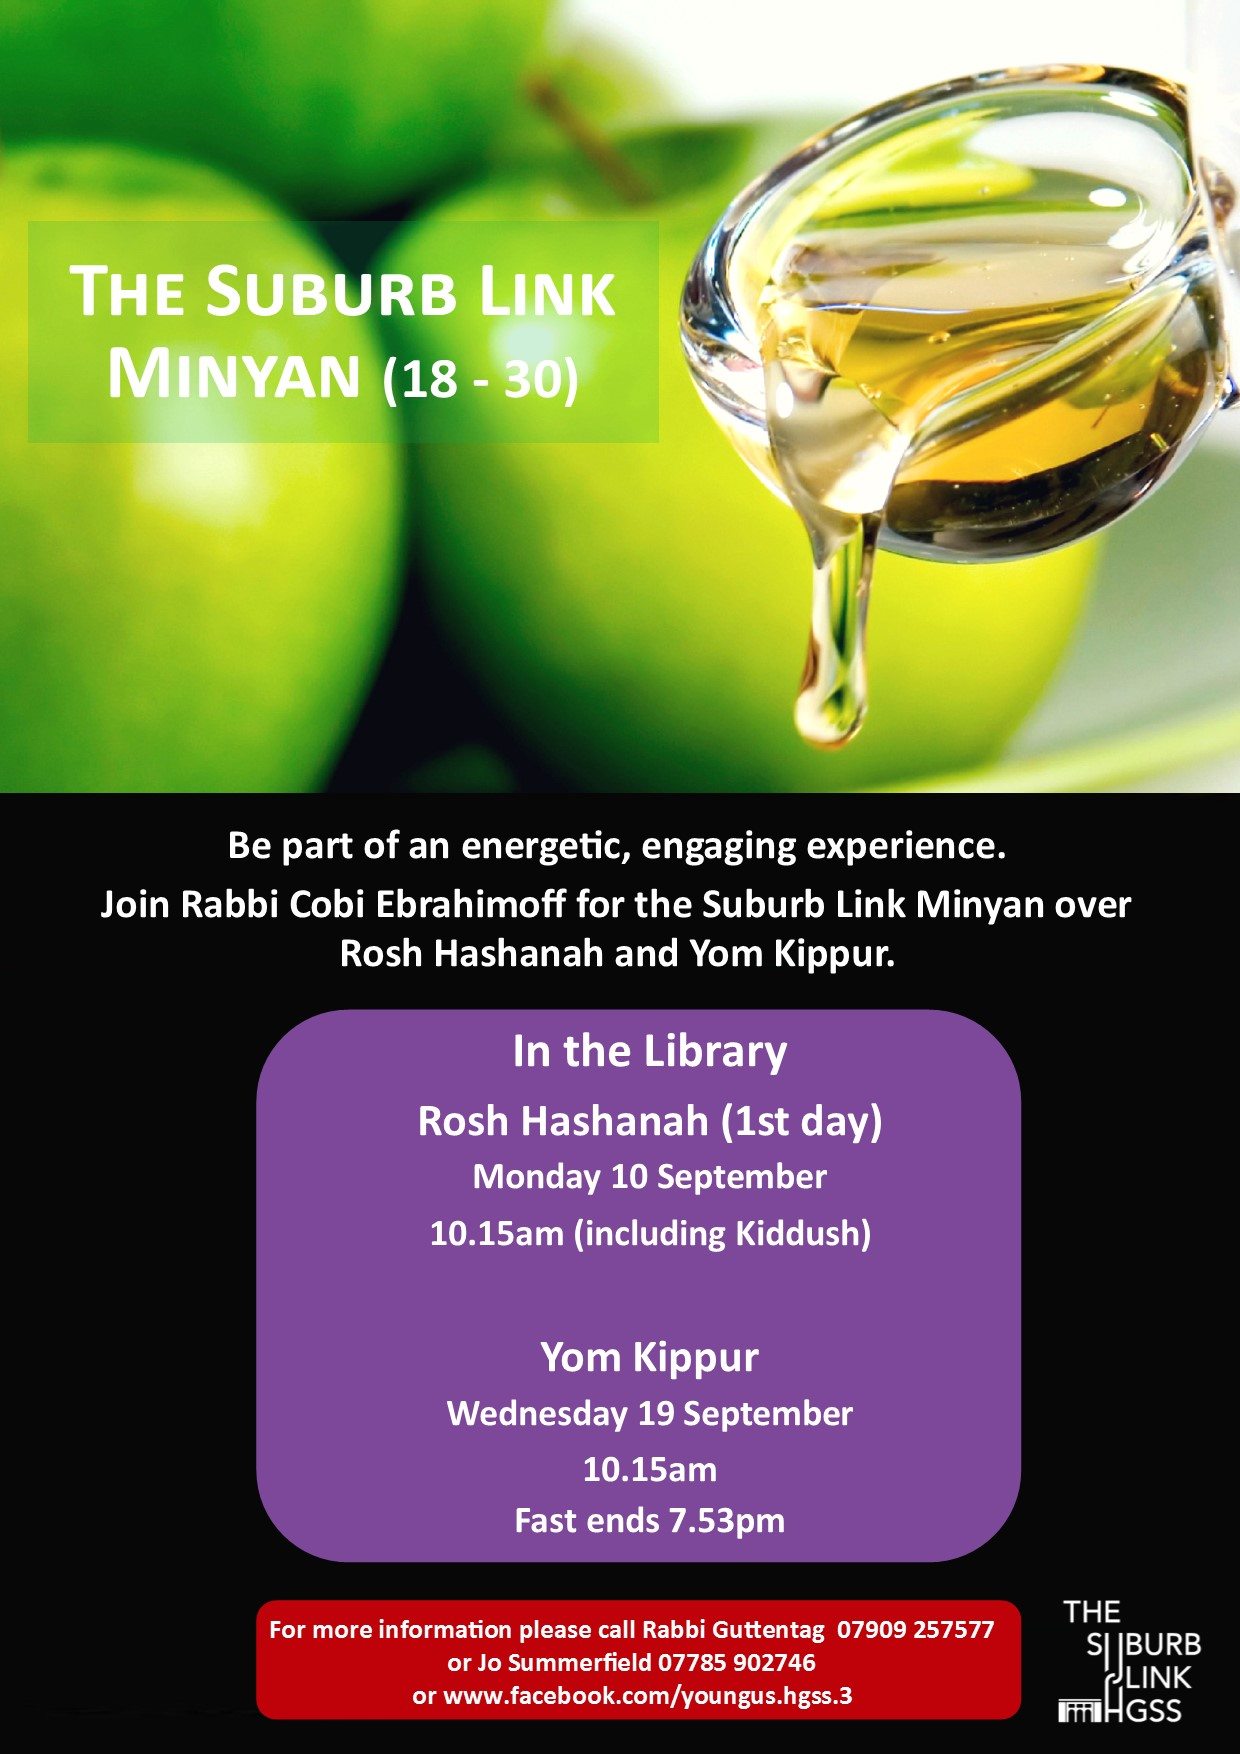 The Suburb Link Minyan Service @ The Library, HGSS